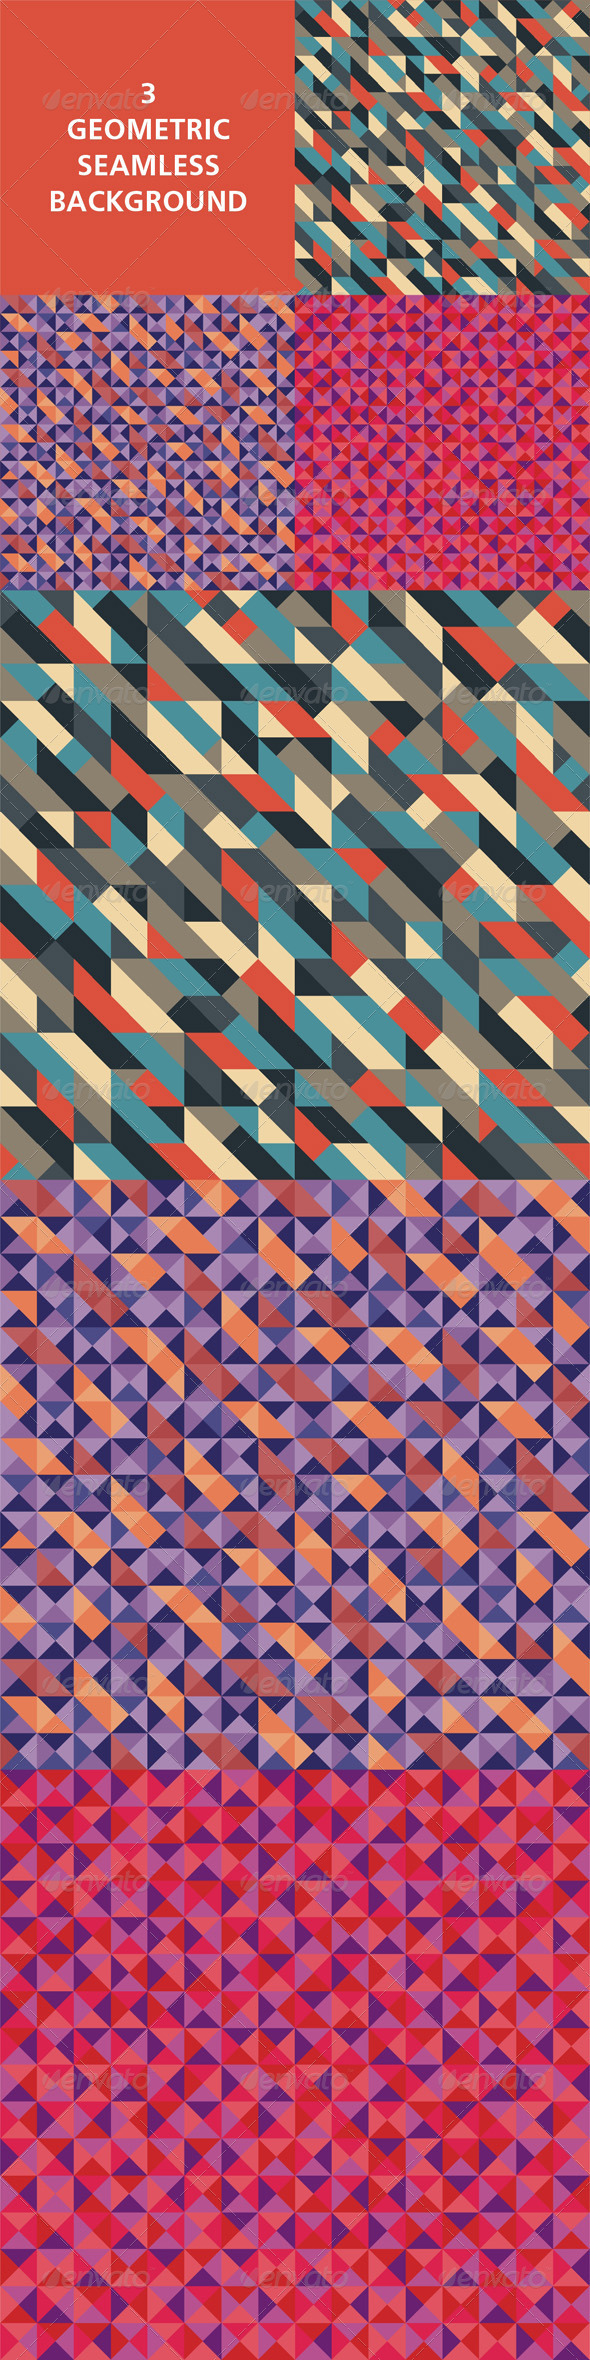 Geometric Seamless Background 02 - Backgrounds Decorative